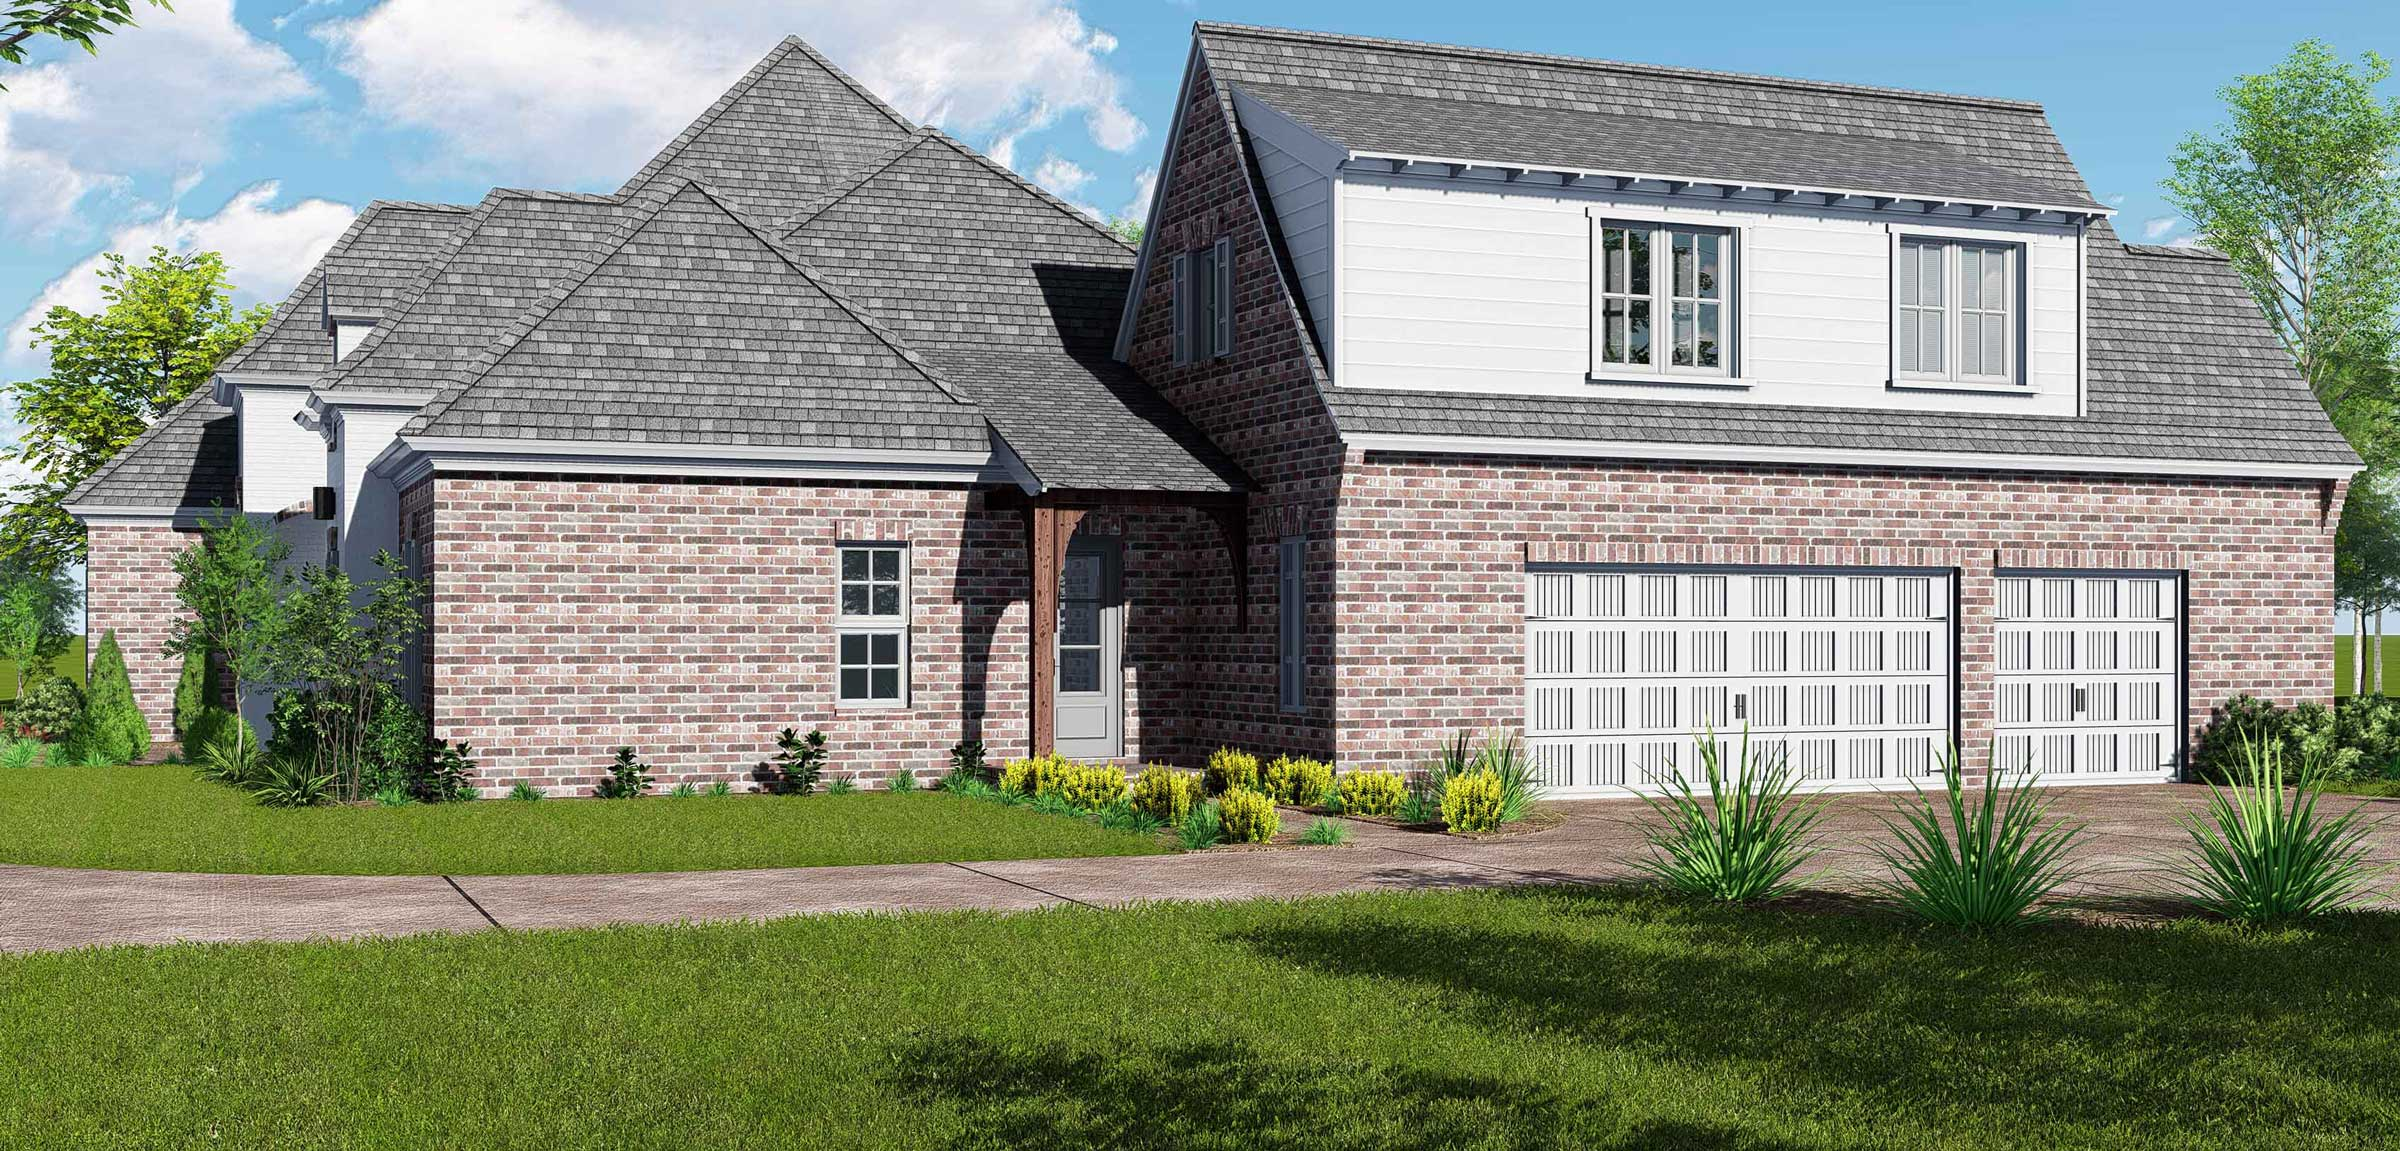 61-18-3D-Front-Elevation-Right